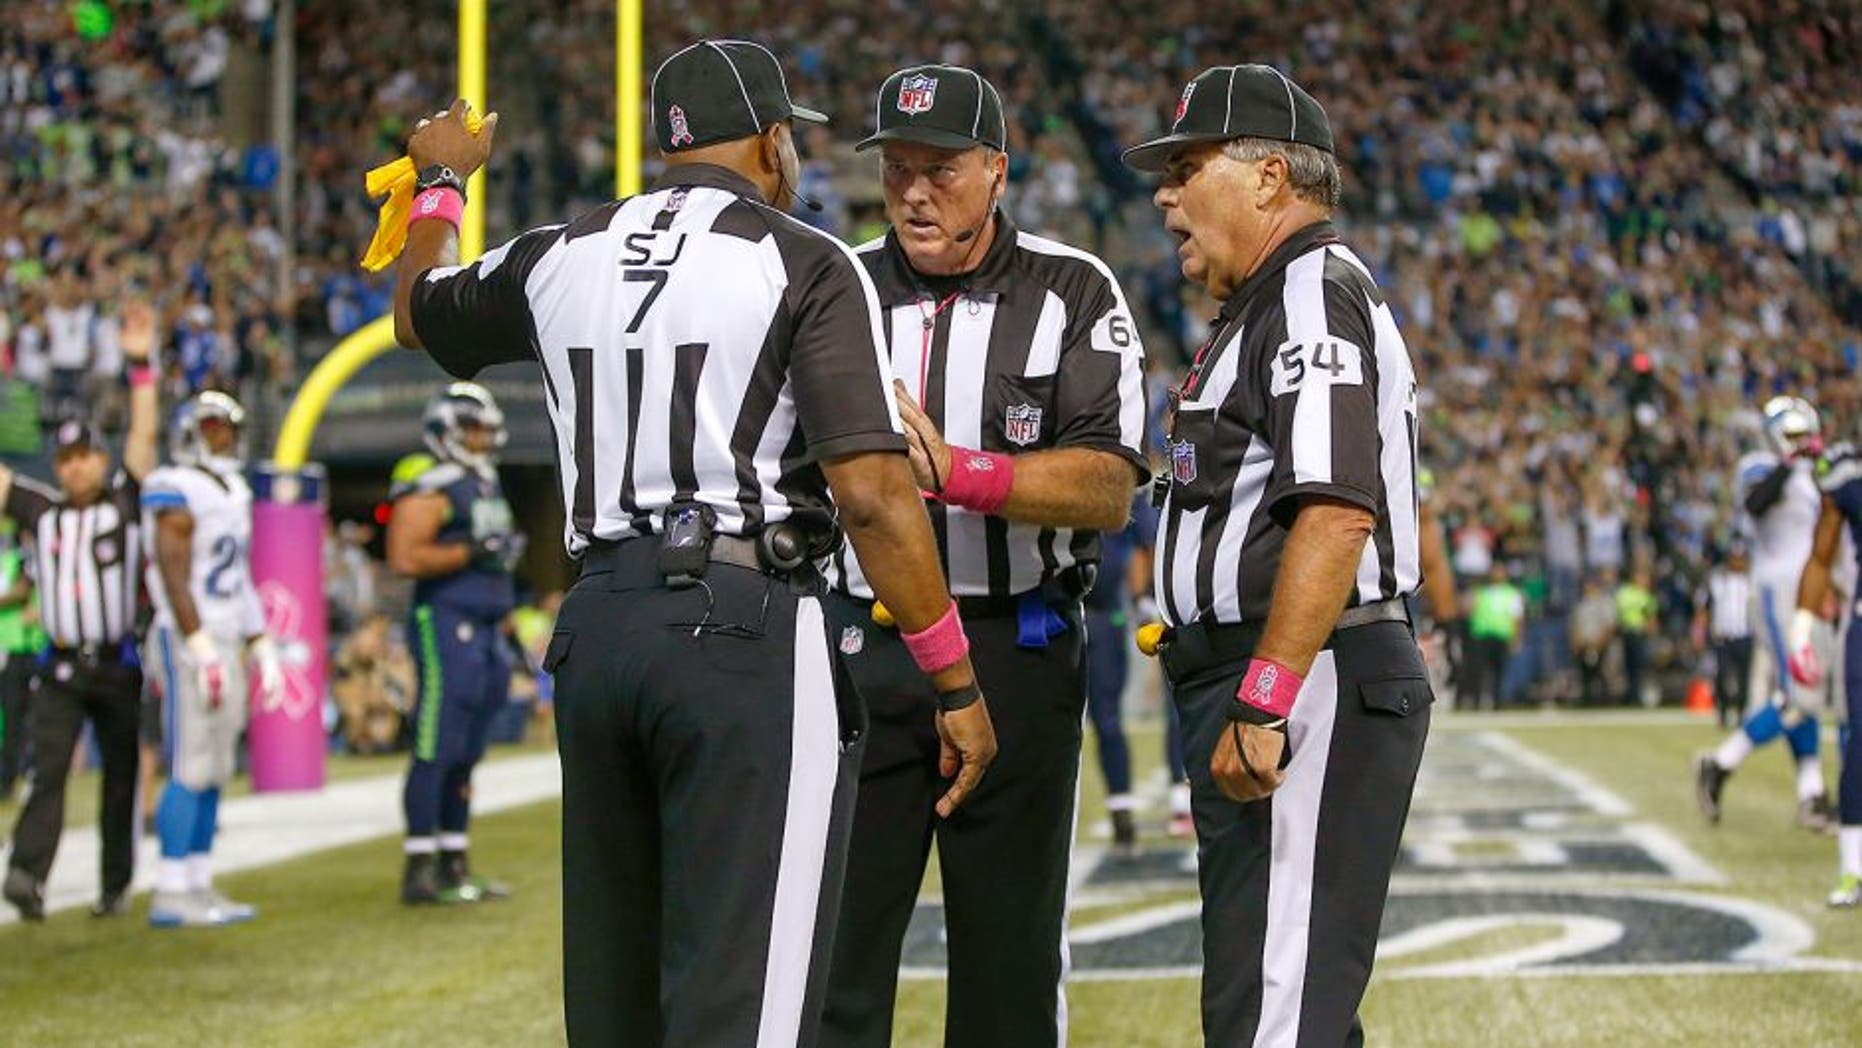 SEATTLE, WA - OCTOBER 05: Referees confer after the ball was batted out of the end zone by outside linebacker K.J. Wright of the Seattle Seahawks following a fumble by wide receiver Calvin Johnson of the Detroit Lions in the fourth quarter at CenturyLink Field on October 5, 2015 in Seattle, Washington. The Seahawks defeated the Lions 13-10. (Photo by Otto Greule Jr/Getty Images)